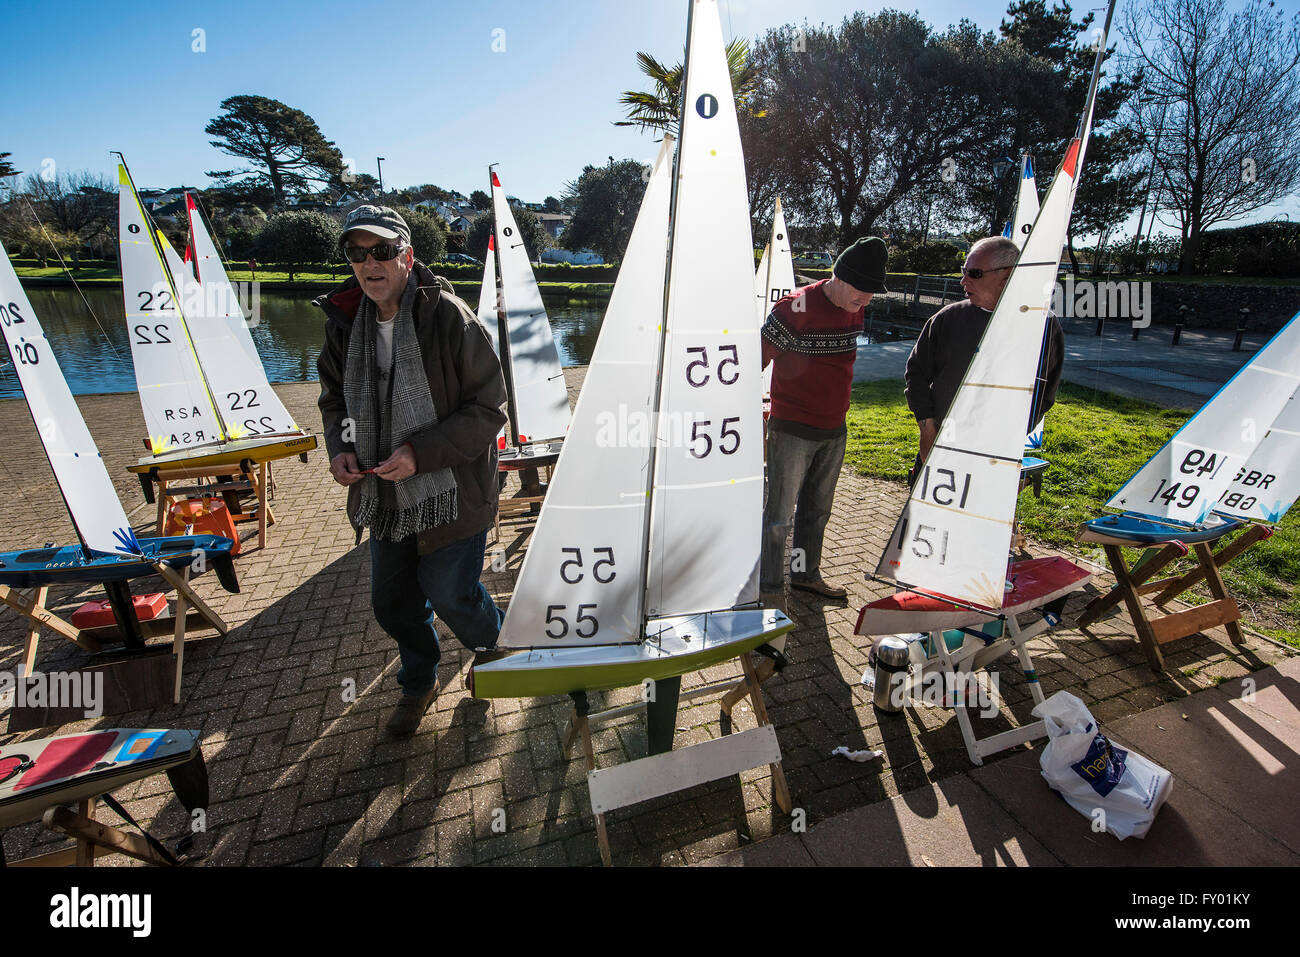 The Newquay Model Yacht Club at Trenance Lake in Newquay, Cornwall. Stock Photo